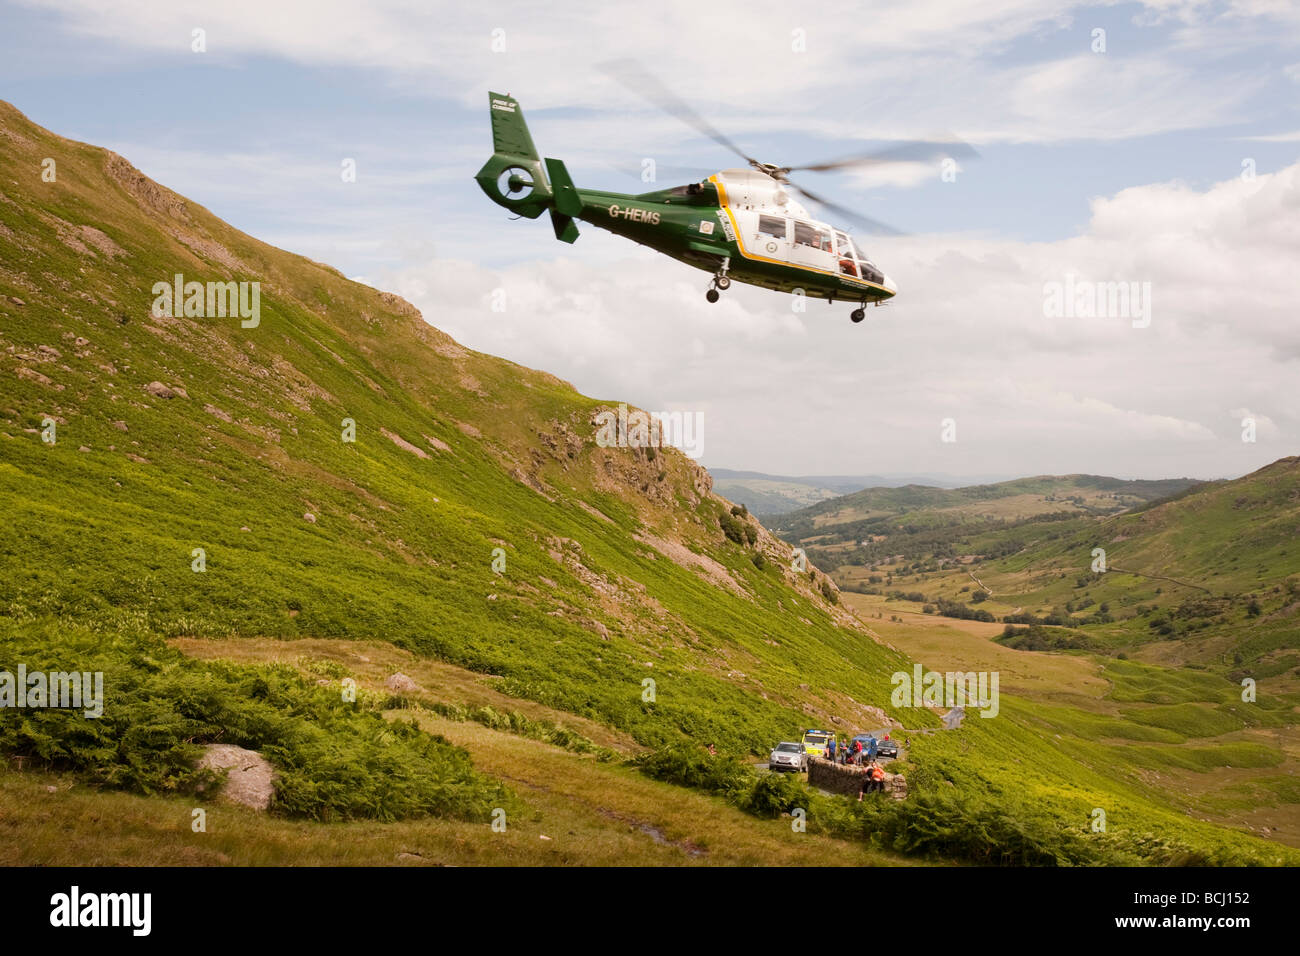 An Air Ambulance takes off with a casualty from a mountain rescue on Wrynose Pass, Lake District, UK - Stock Image